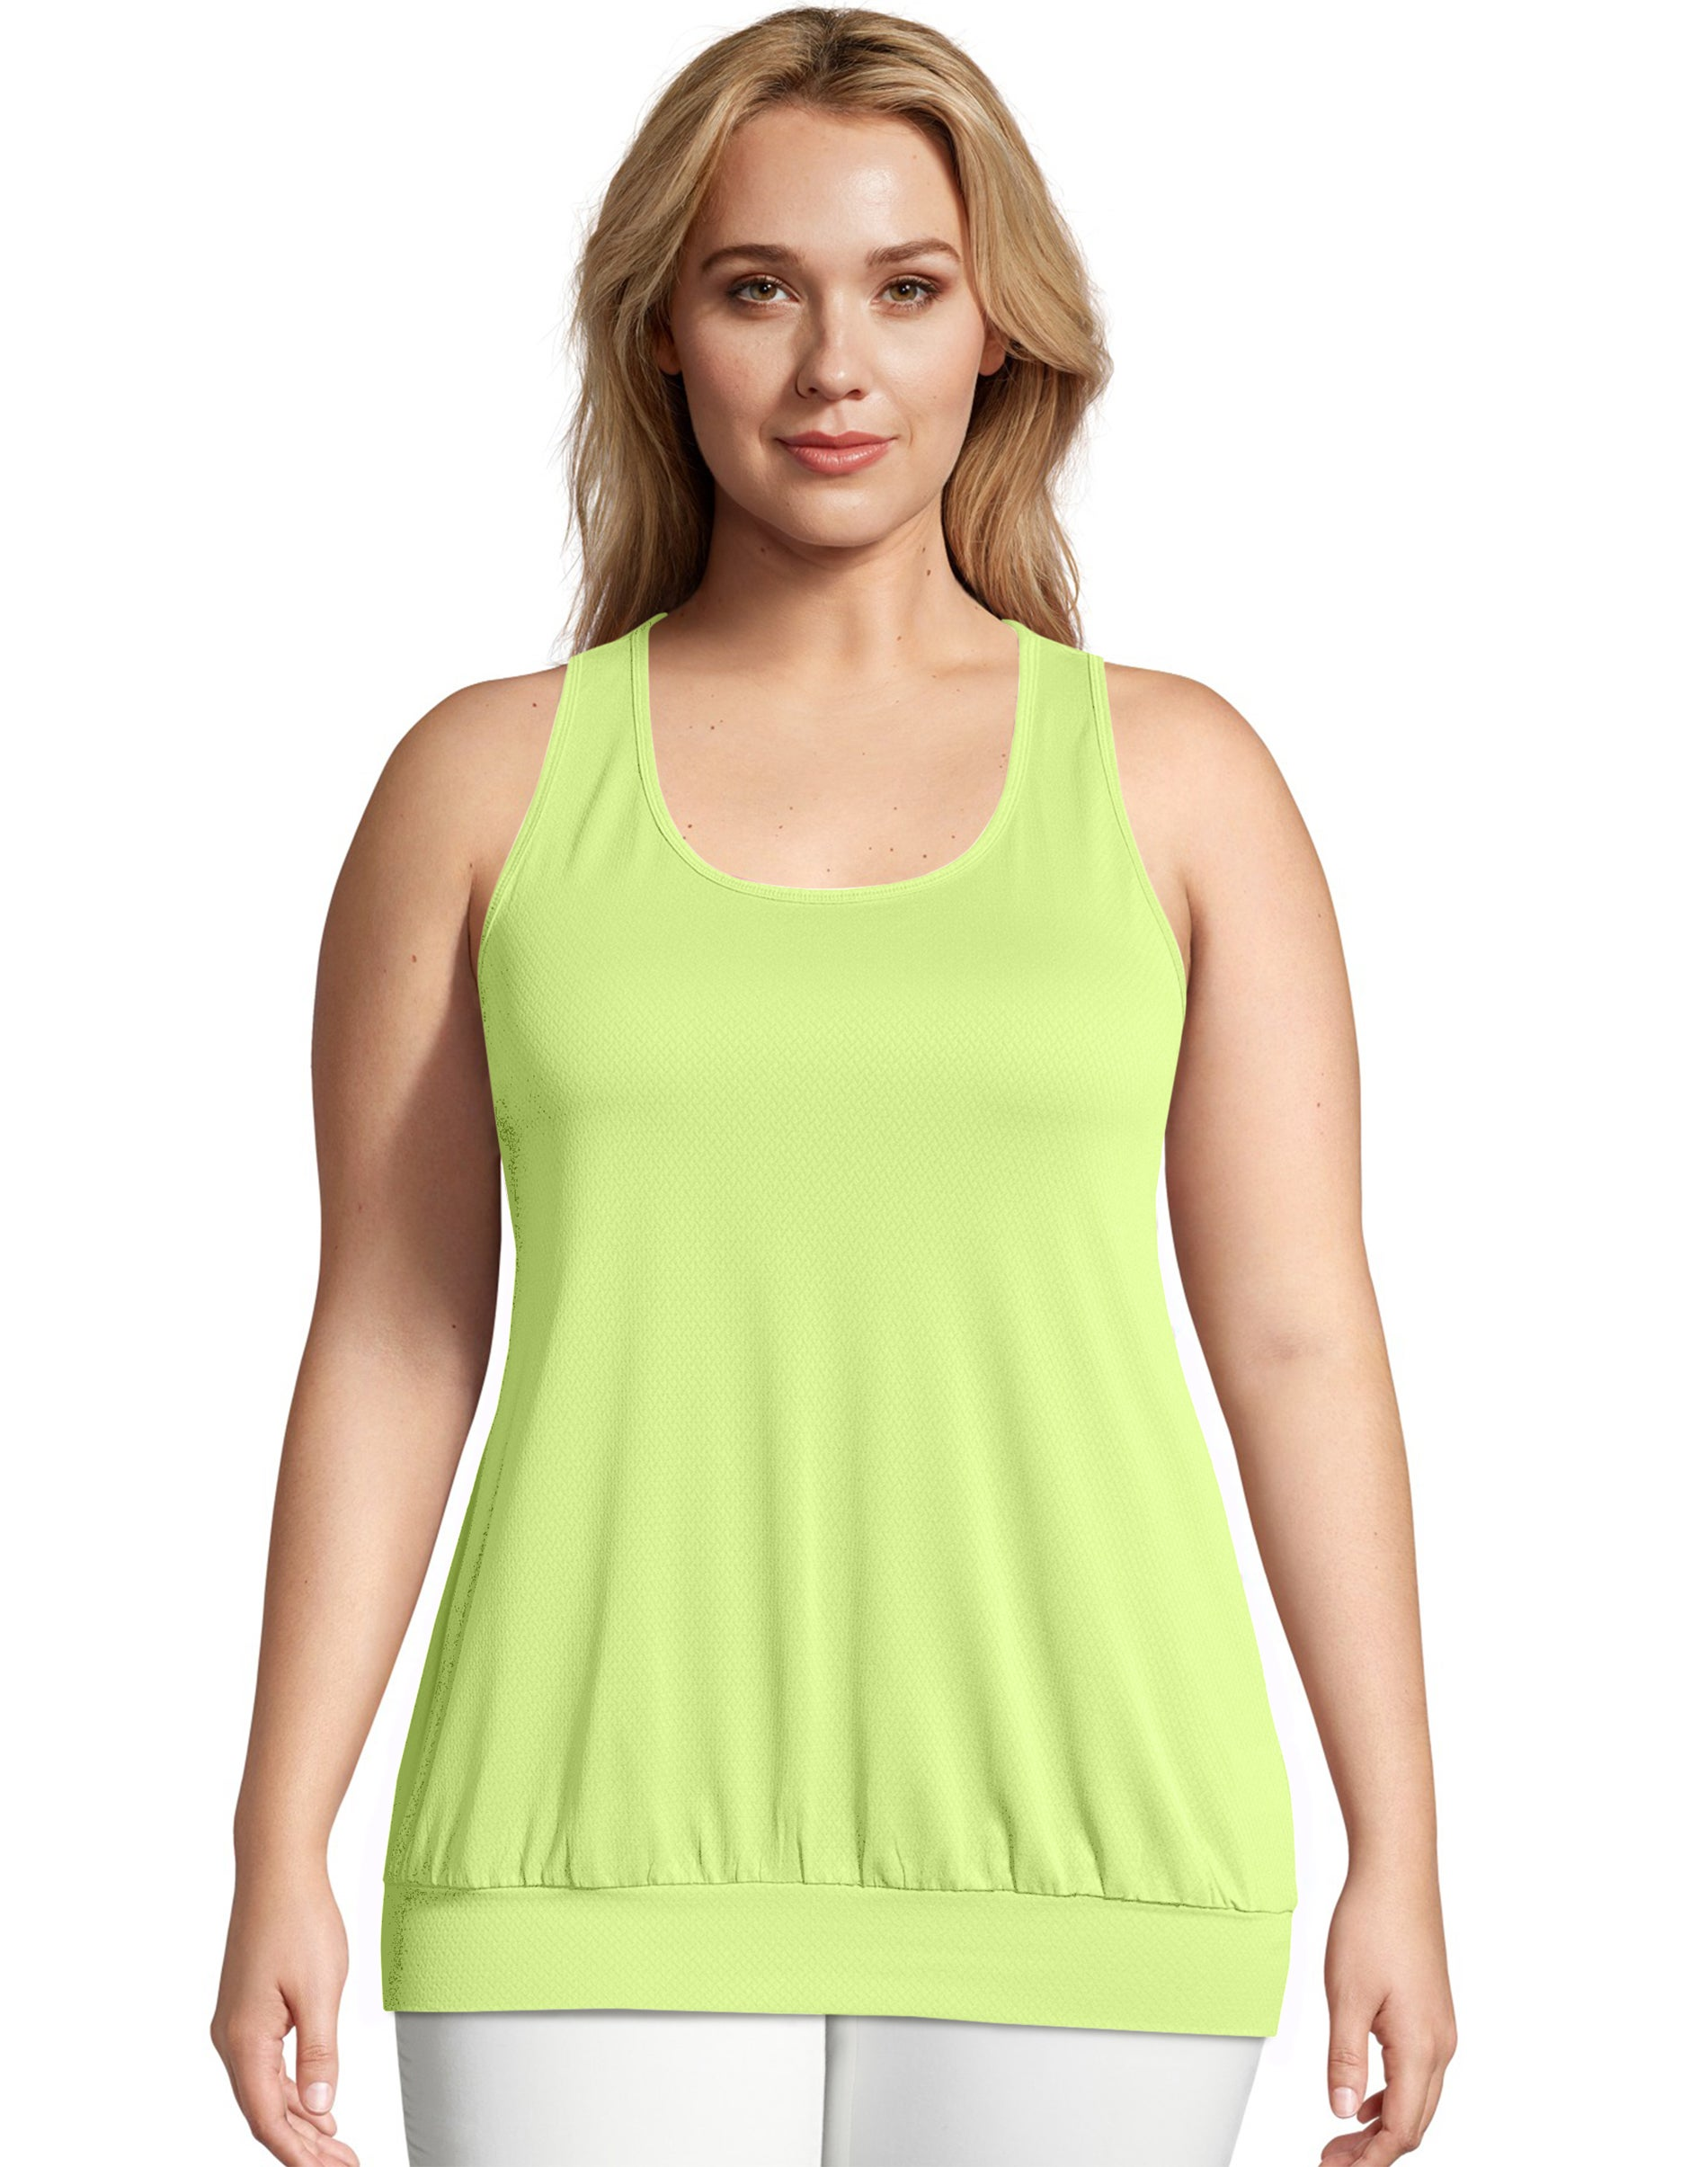 2 Just My Size Active Mesh Banded Tank Tops OJ367